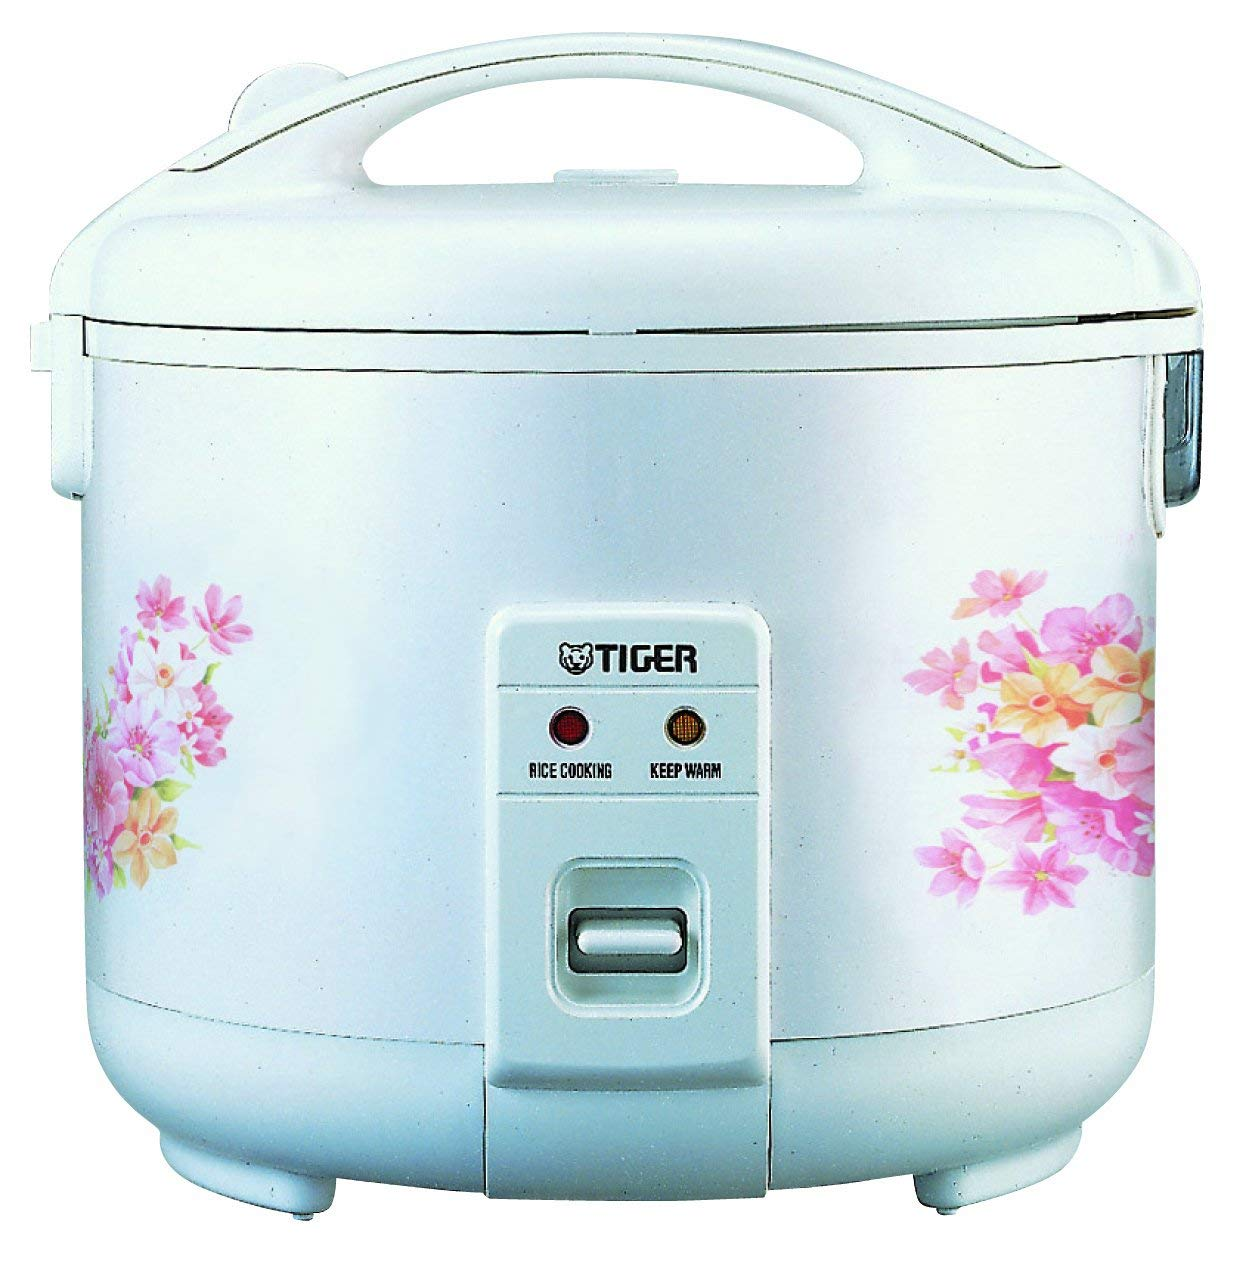 Tiger Electric JNP-0720 Rice Cooker, 4 Cup